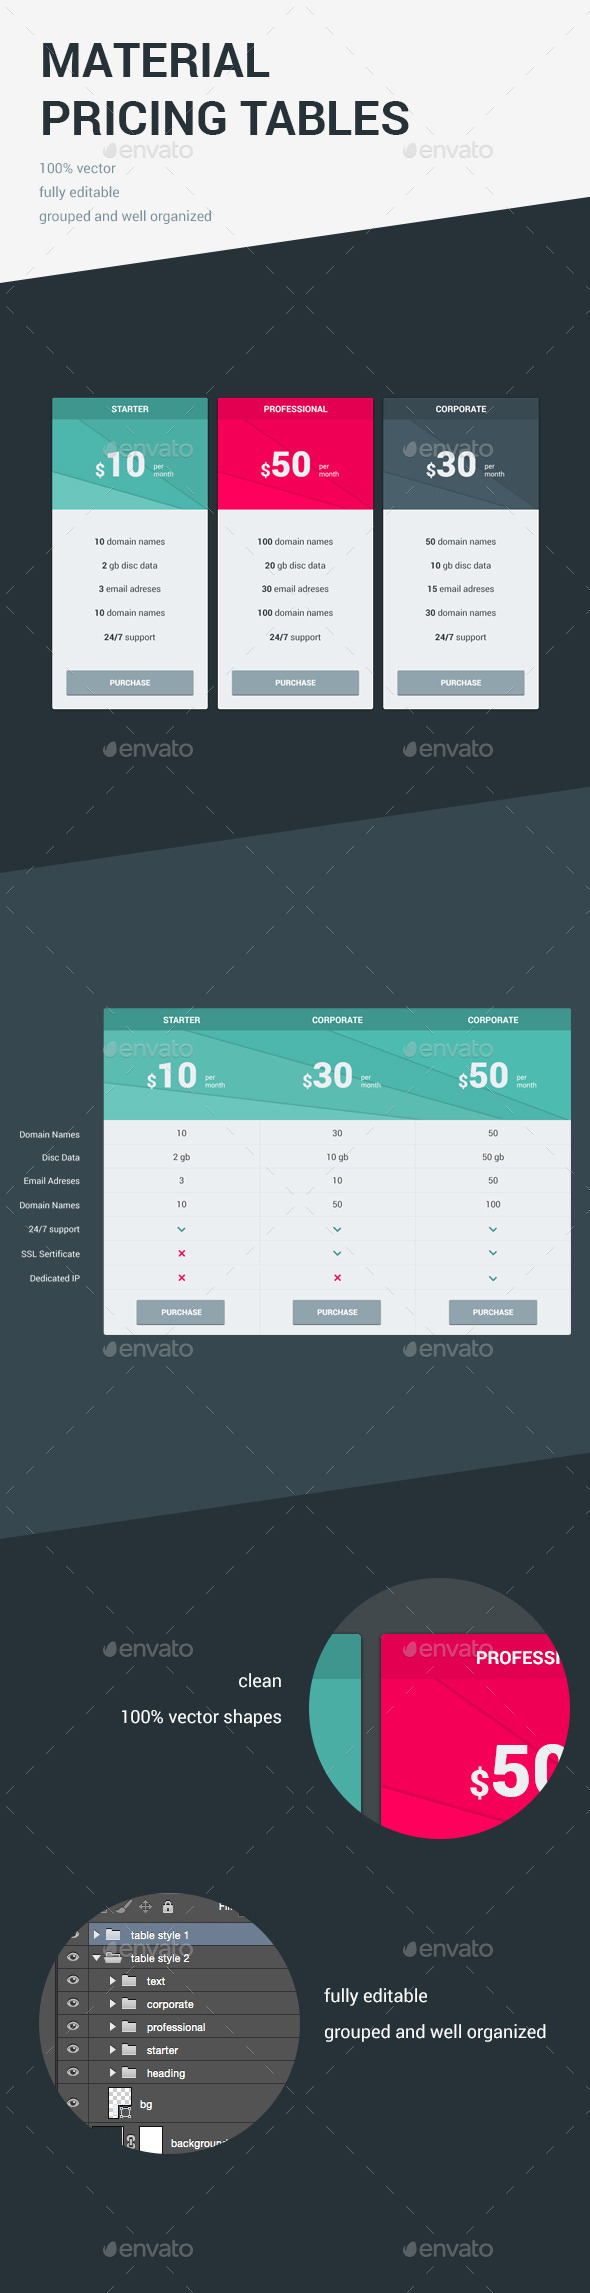 Material Pricing Tables  Pricing Table Template And Vector Shapes